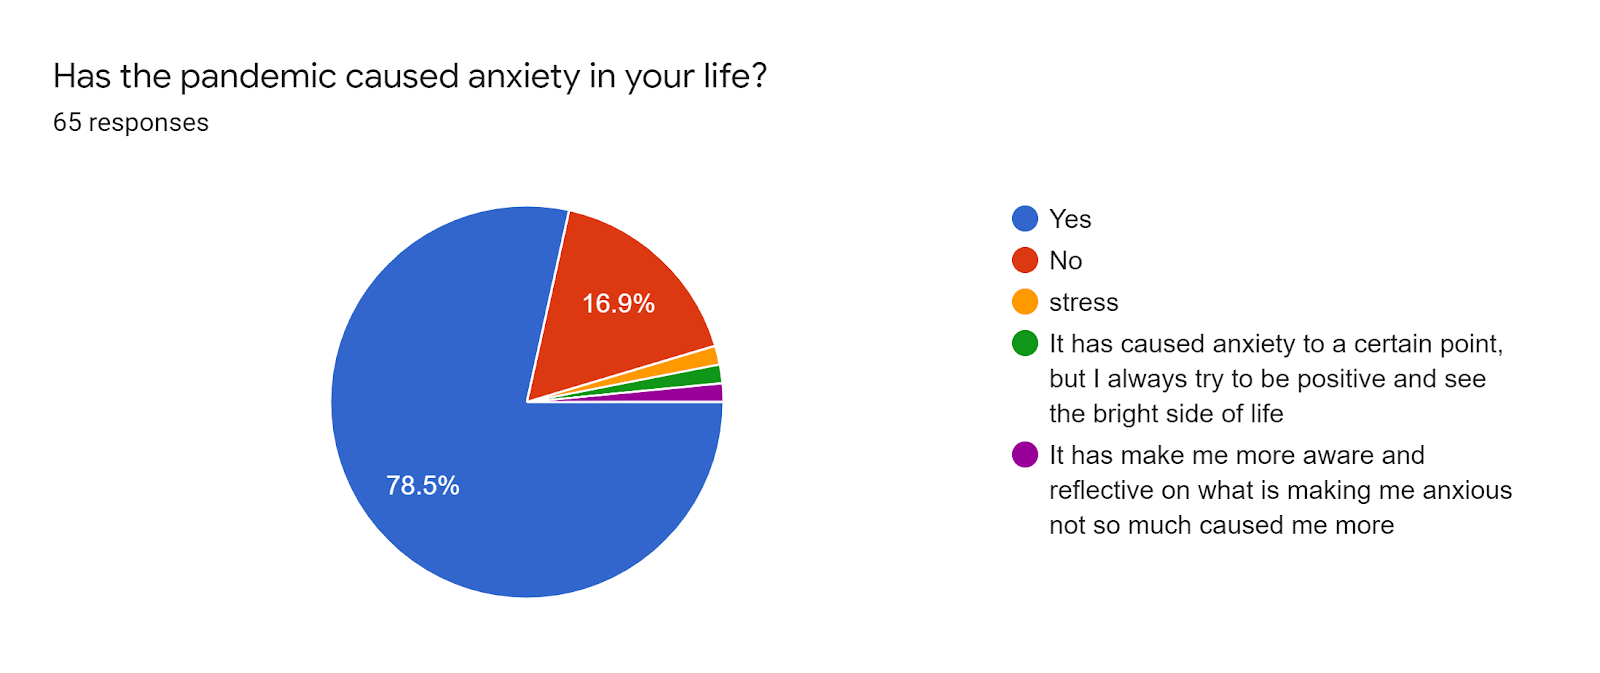 Forms response chart. Question title: Has the pandemic caused anxiety in your life?. Number of responses: 65 responses.